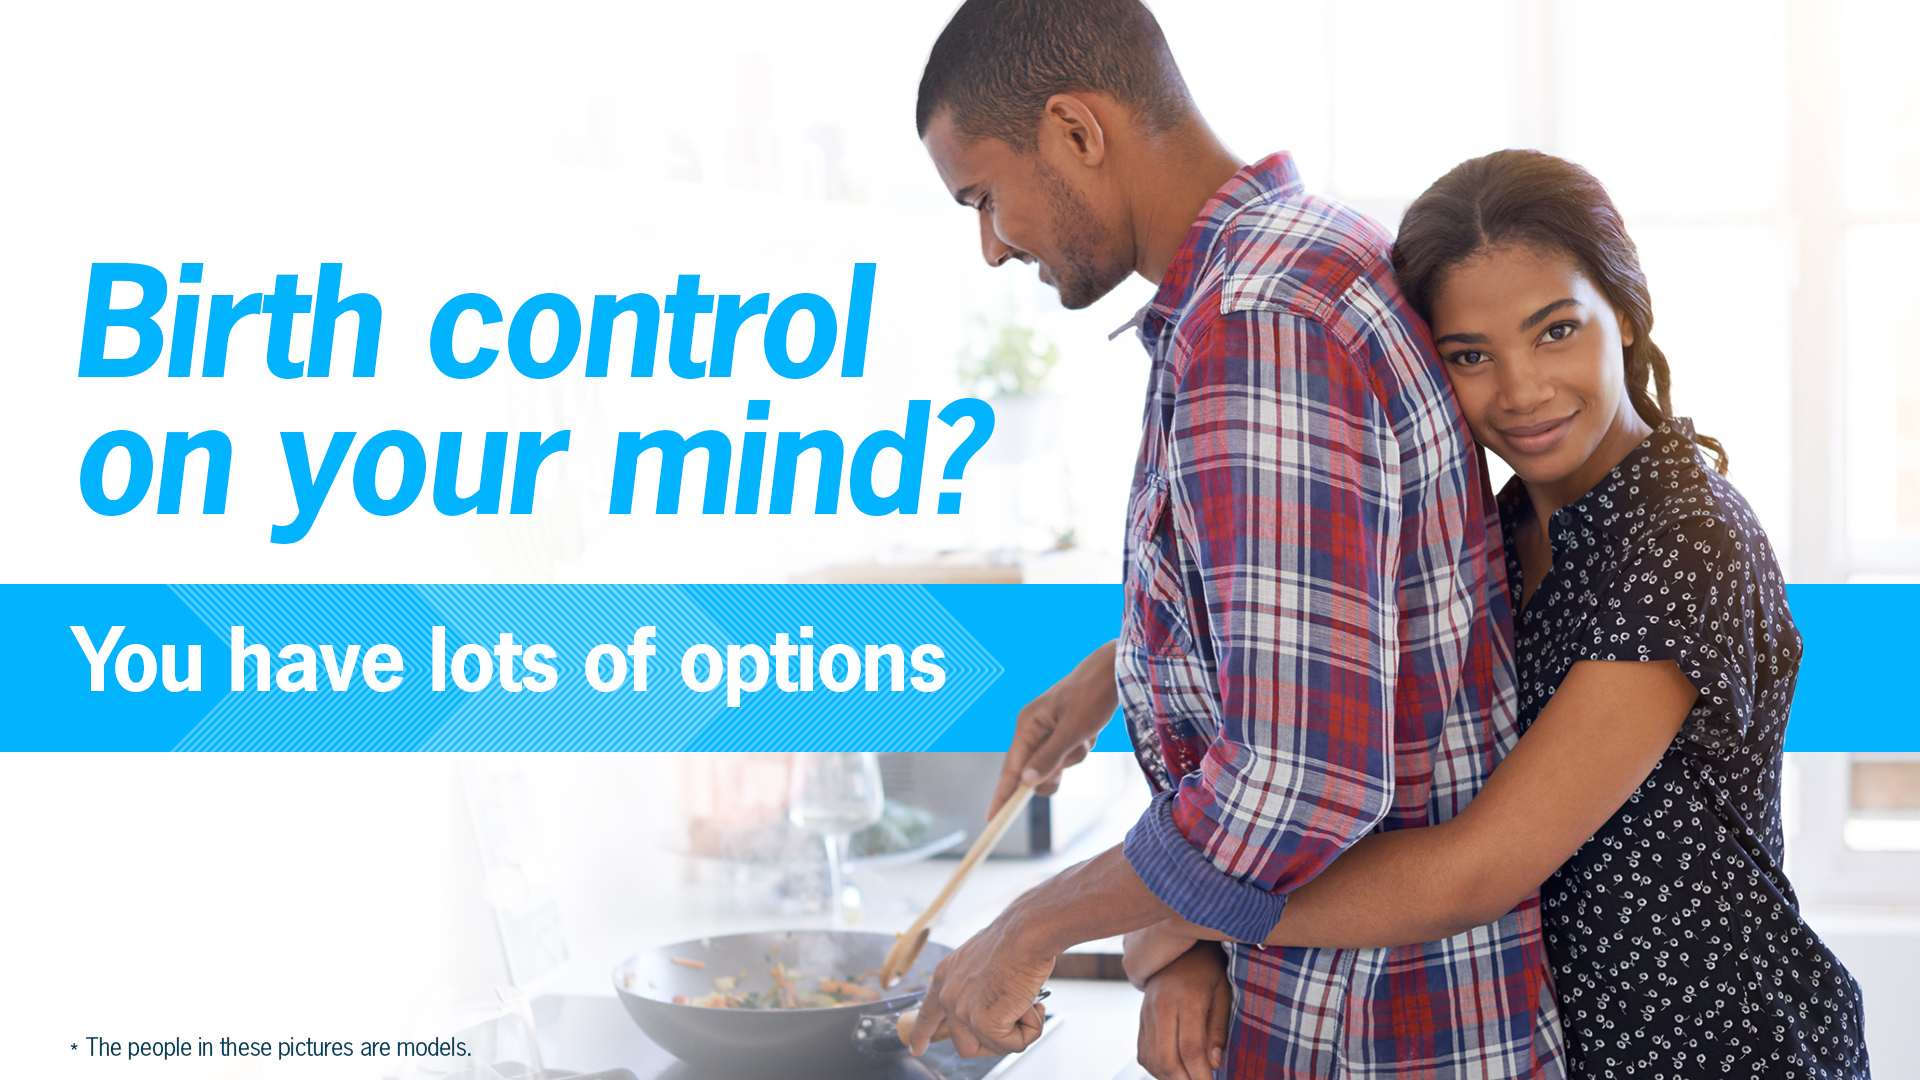 Birth control on your mind? You have options.